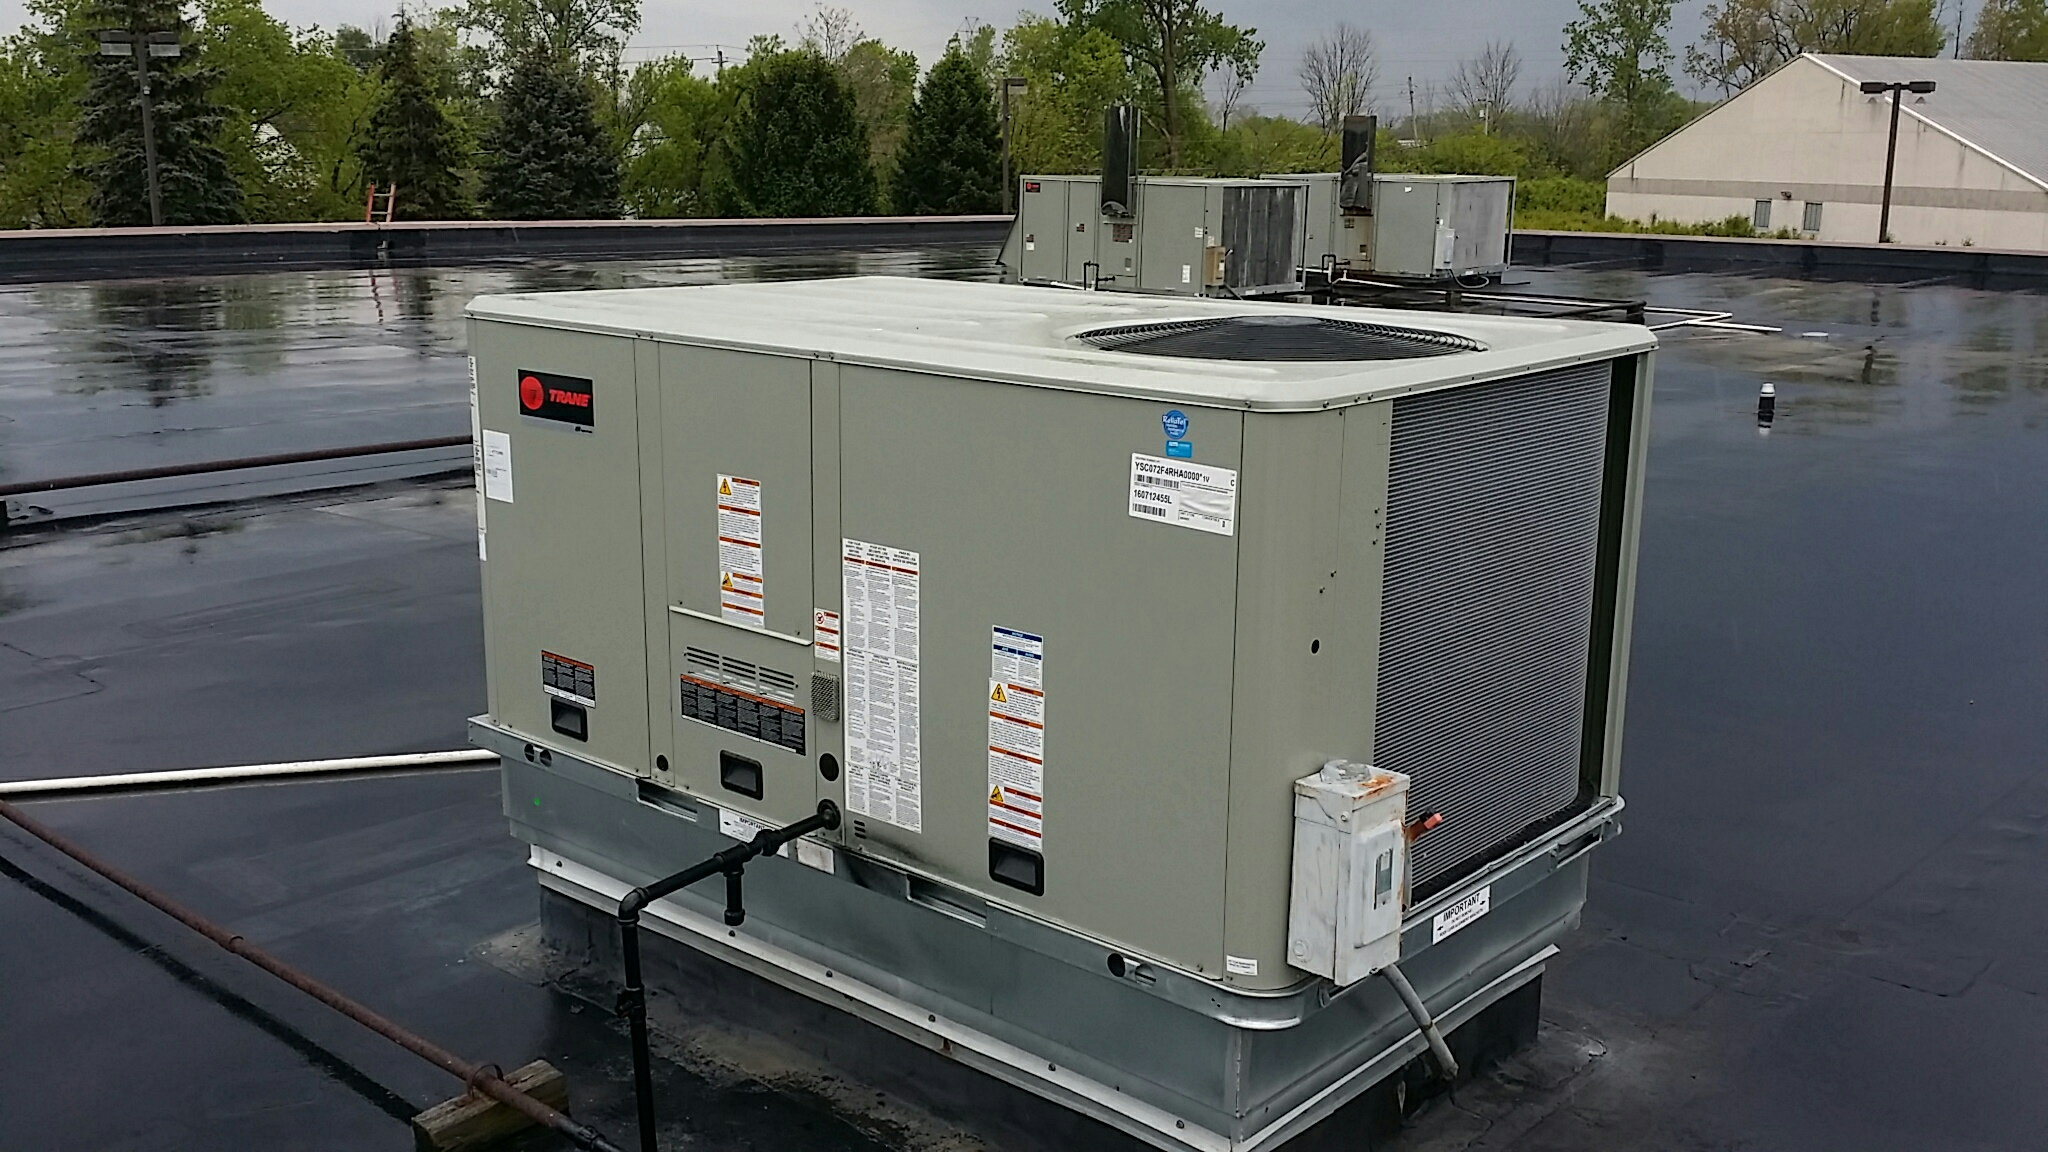 Hilliard, OH - Trane Voyager reliatel Rooftop Heating and Cooling package unit Retrofit replacement  Dish Network call center  Mill Meadow Drive Hilliard Ohio